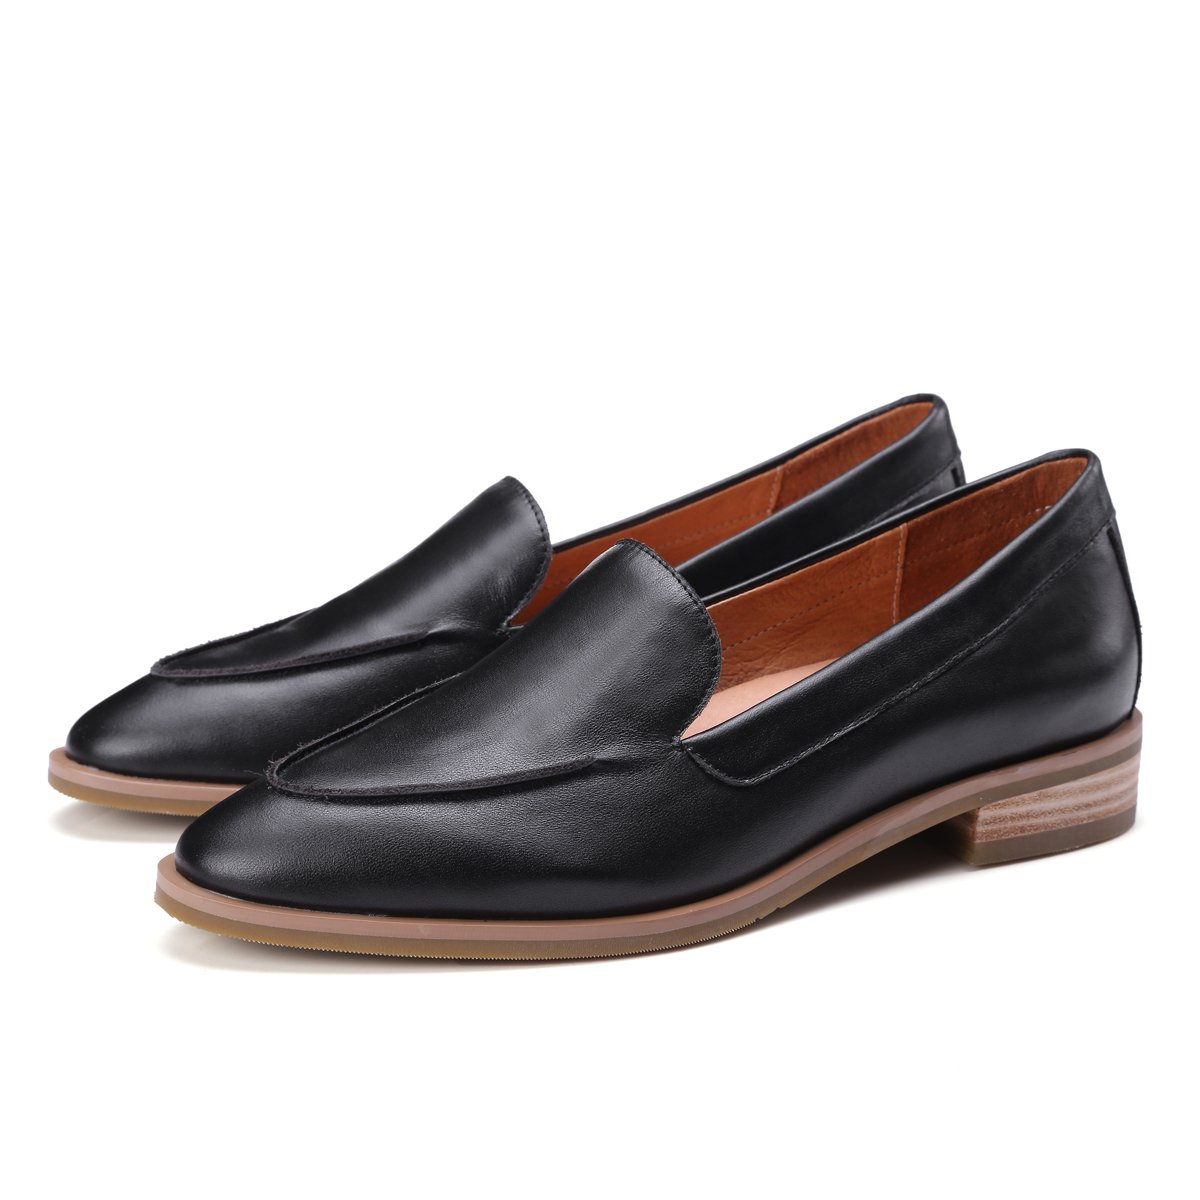 ONEENO Loafers for Women Comfort Casual Slip on Low Heel Cowhide Leather Flat Shoes Black Size 9 US by ONEENO (Image #6)